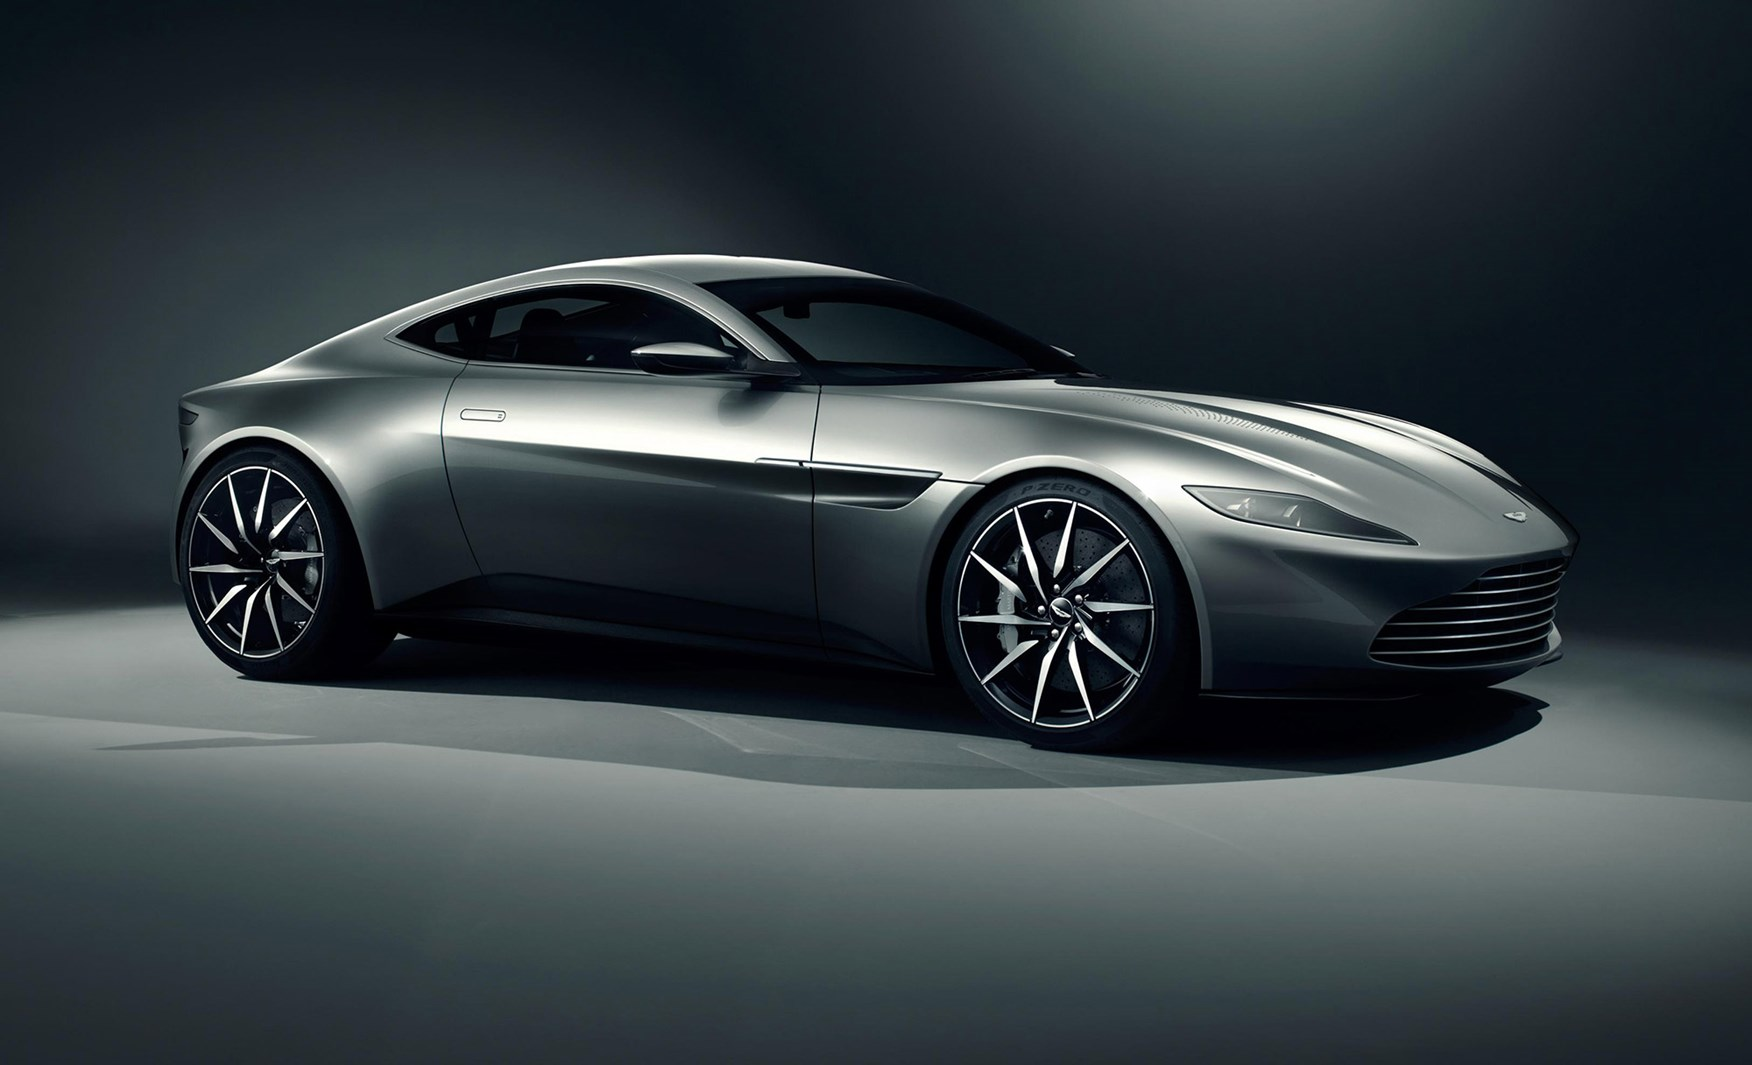 New Aston Martin DB Readies For Launch All The Latest On DB - Aston martin latest models